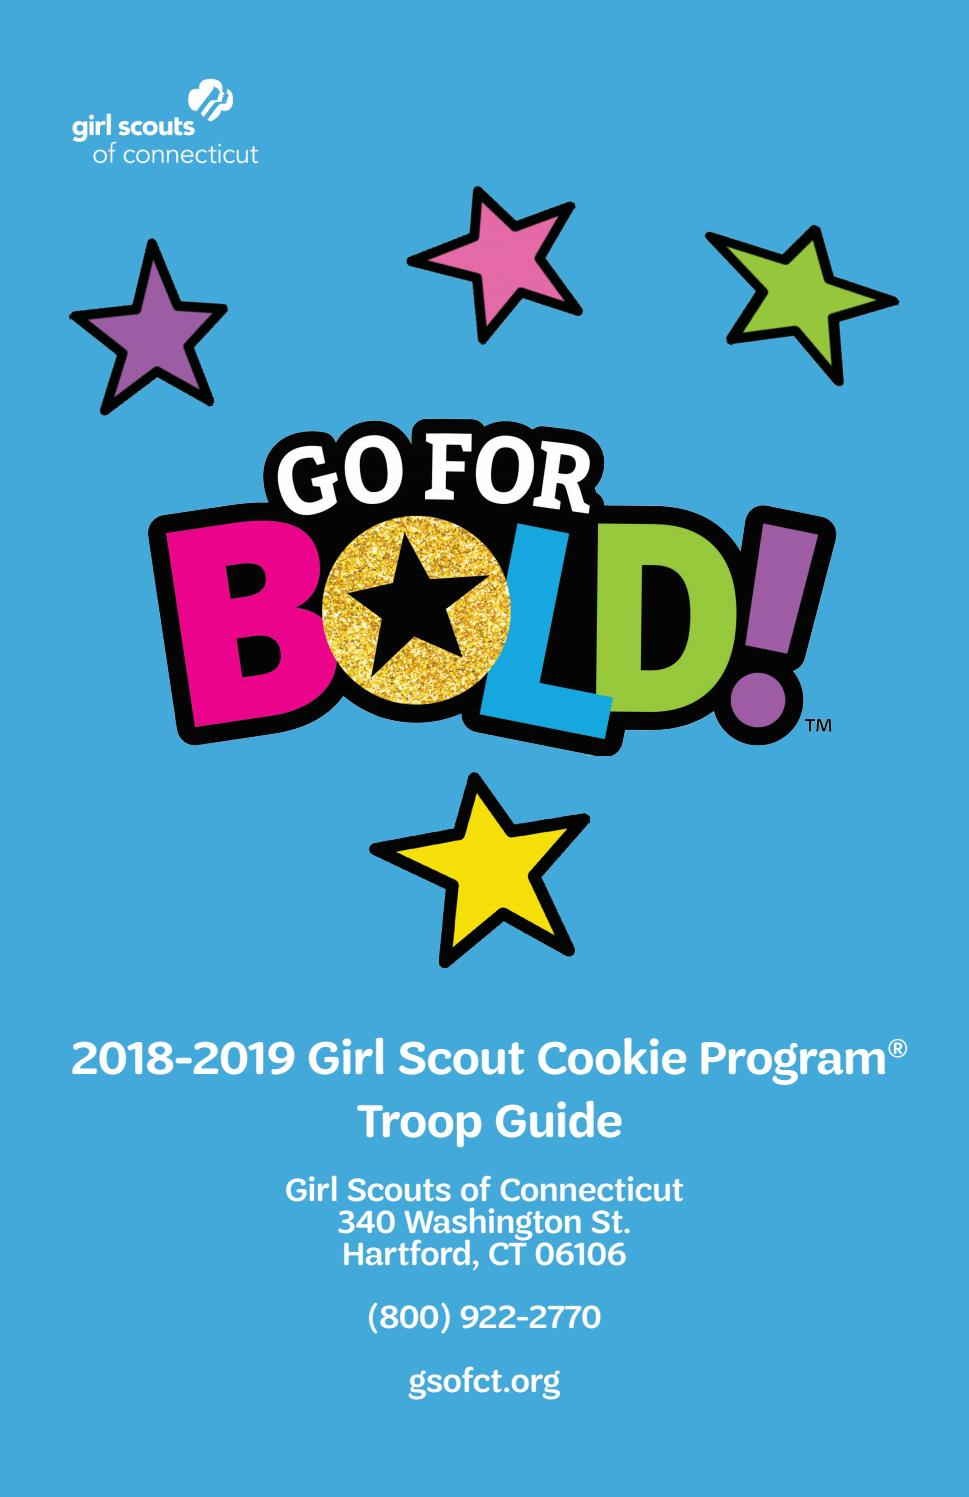 photo regarding Girl Scout Cookie Thank You Notes Printable identified as 2018-2019 Woman Scout Cookie Software Troop Specialist through Female